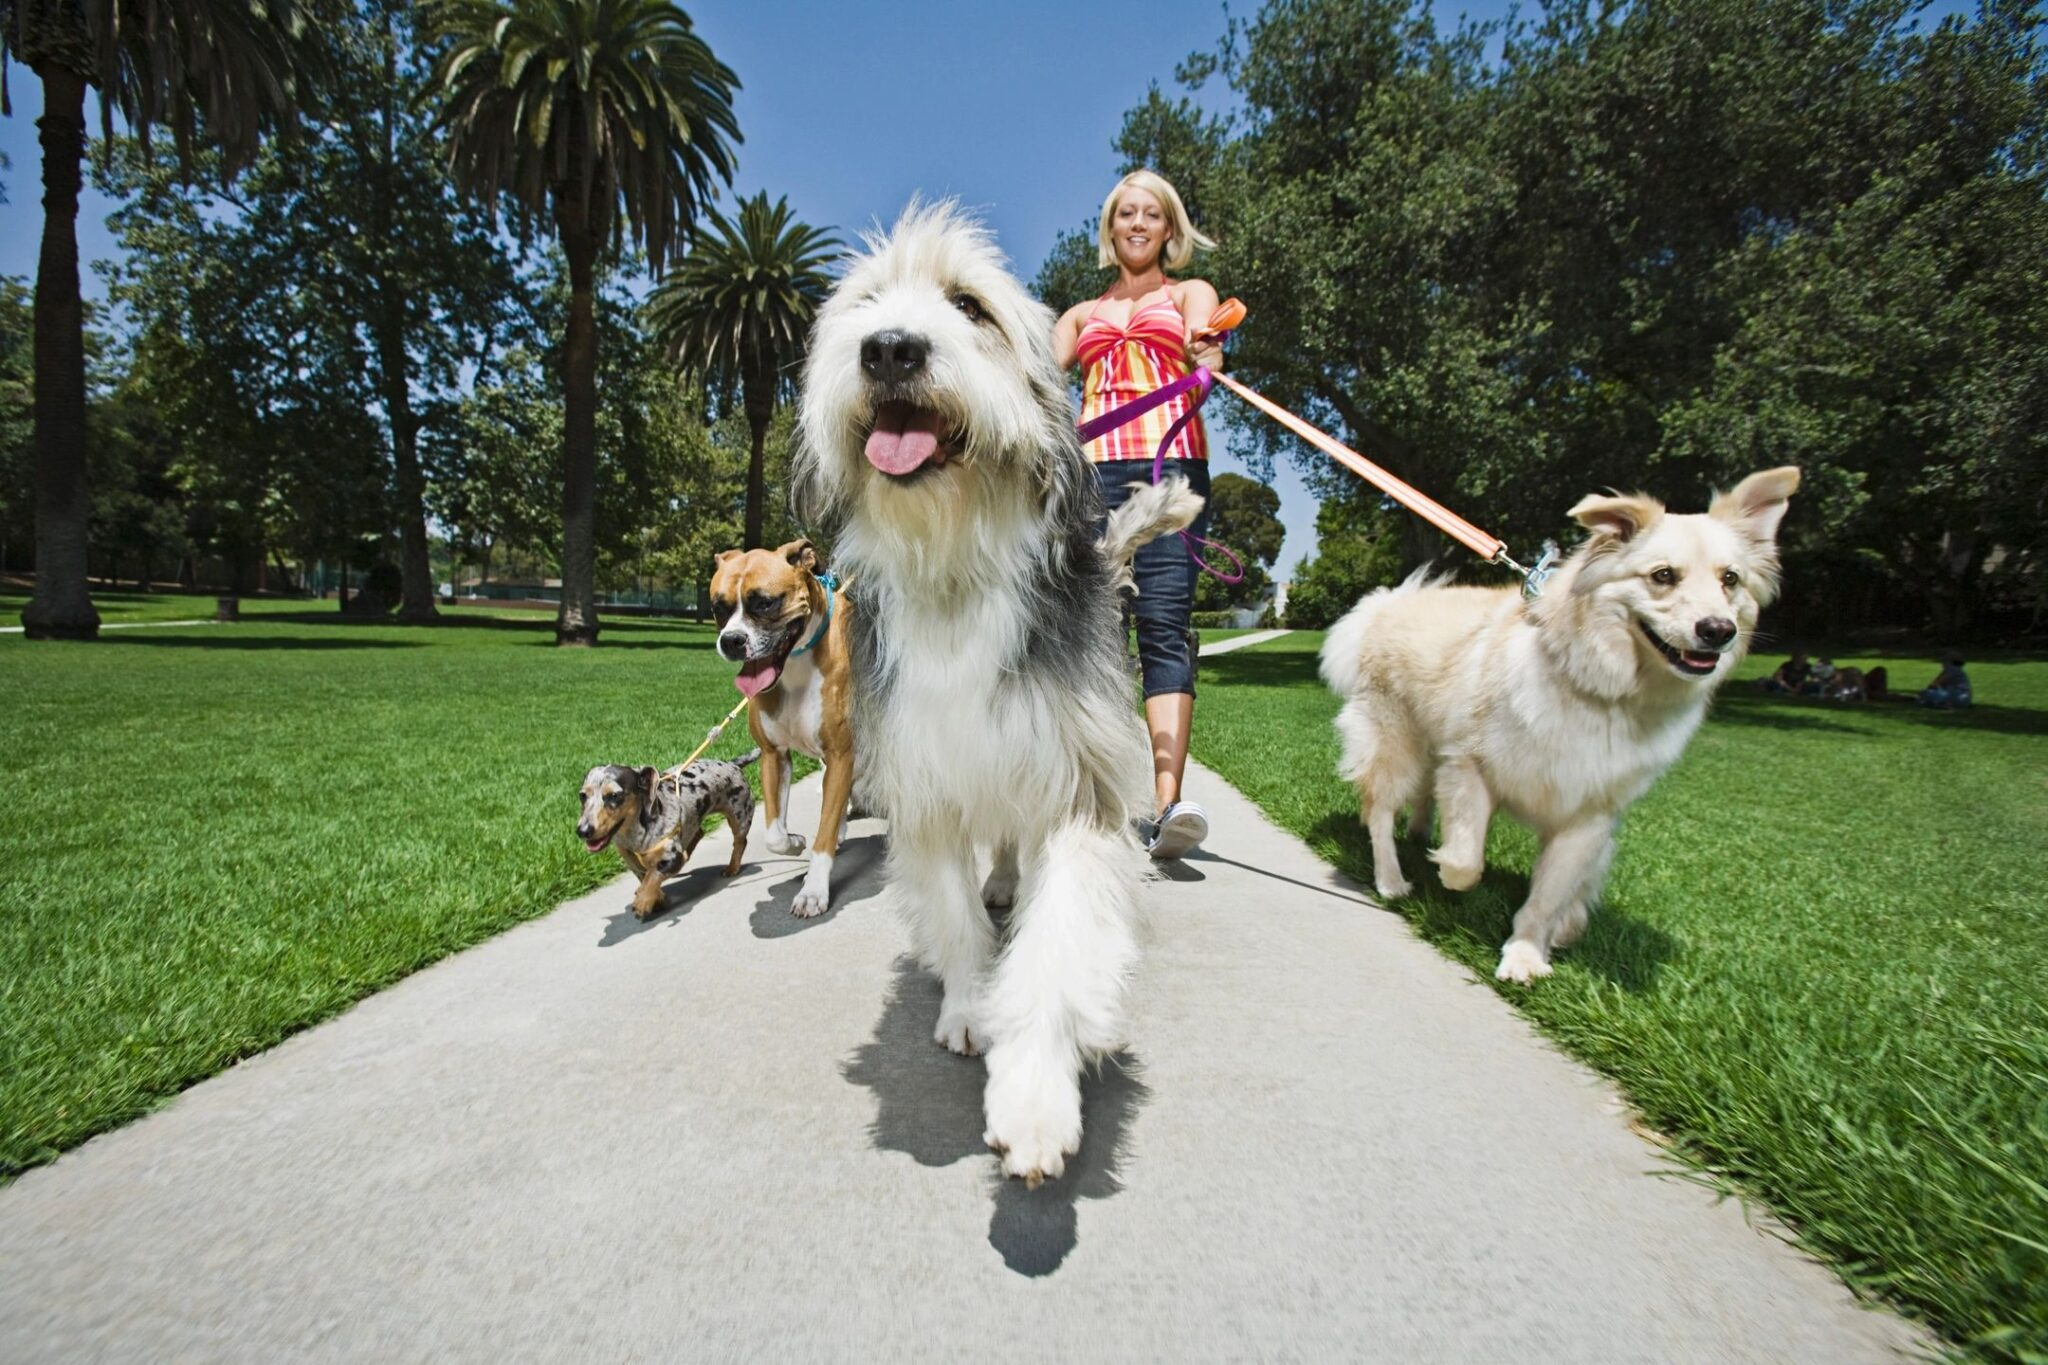 Dog Friendly places near Rome 2